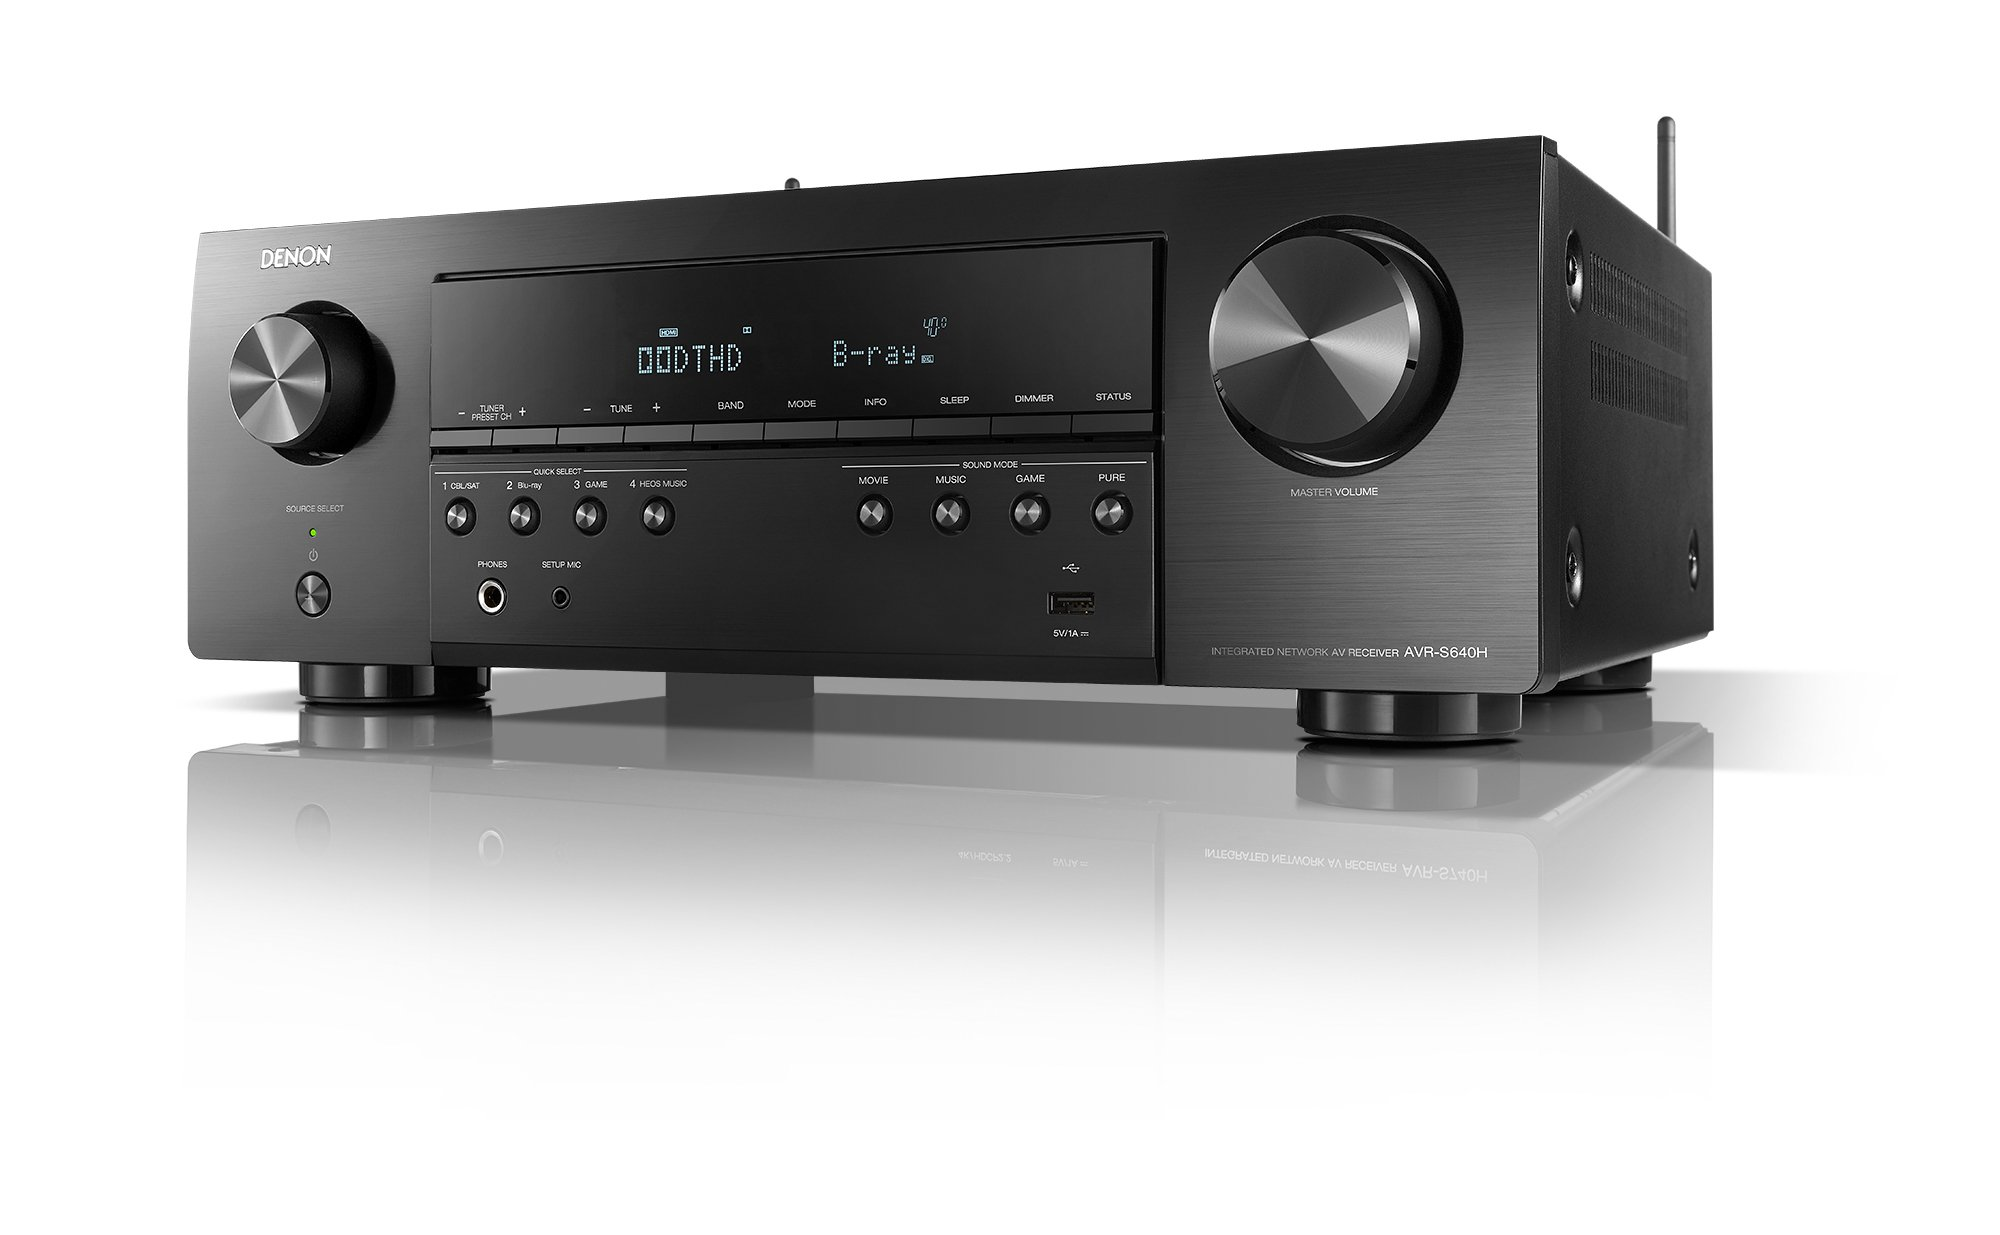 Denon AVR-S640H Audio Video Receiver, 5.2 Channel 4K Ultra HD Home Theater Surround Sound and Music Streaming System - Wi-Fi, Bluetooth, Airplay, Alexa and HEOS Wireless Speaker Expansion Built In by Denon (Image #1)